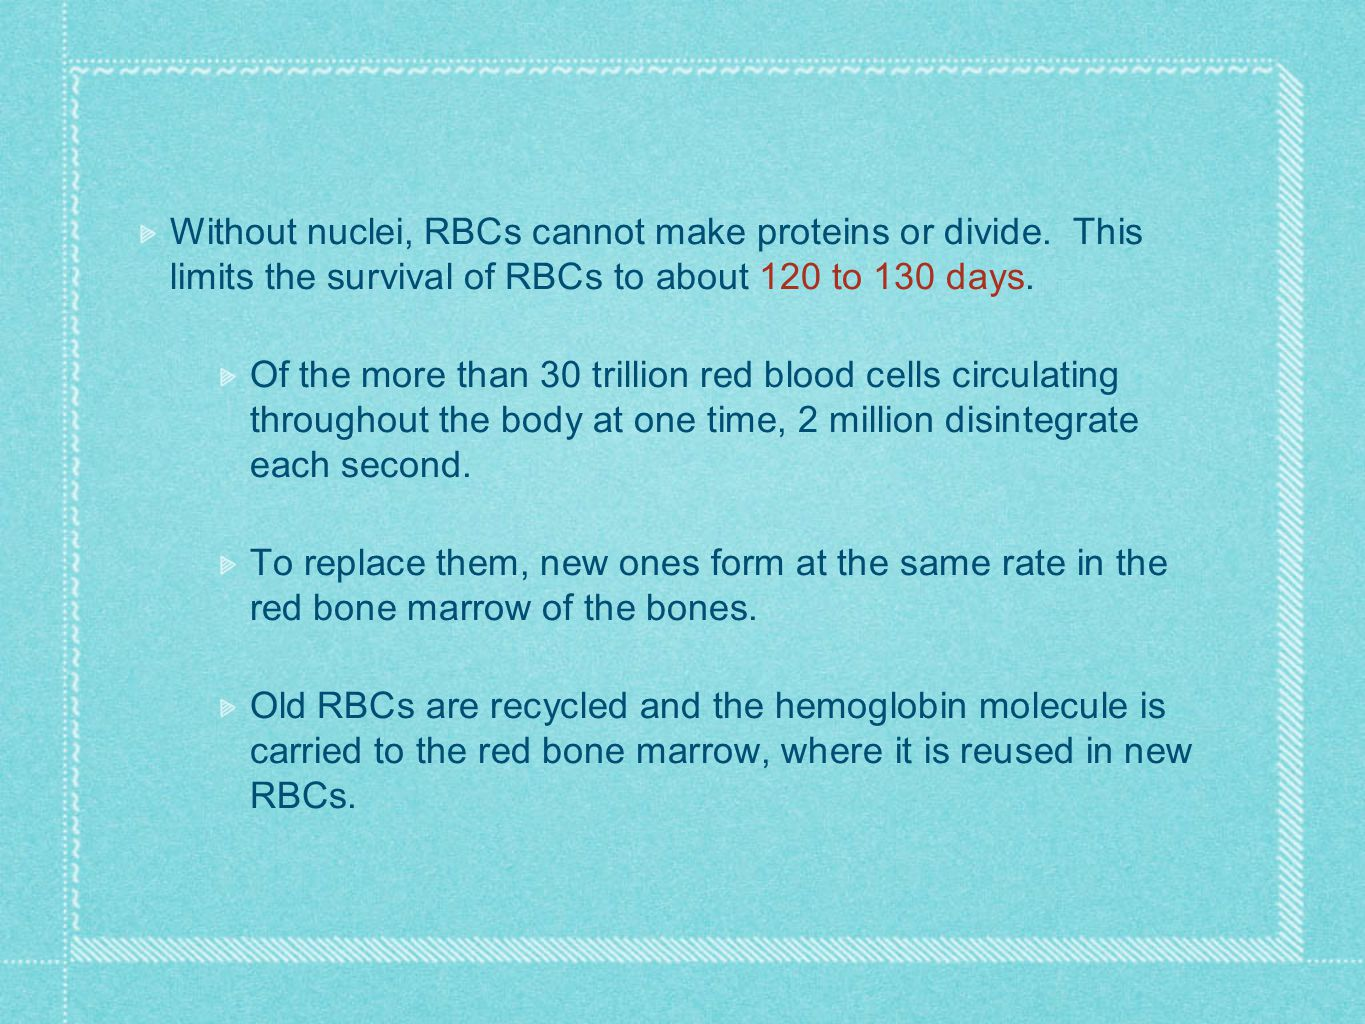 Without nuclei, RBCs cannot make proteins or divide